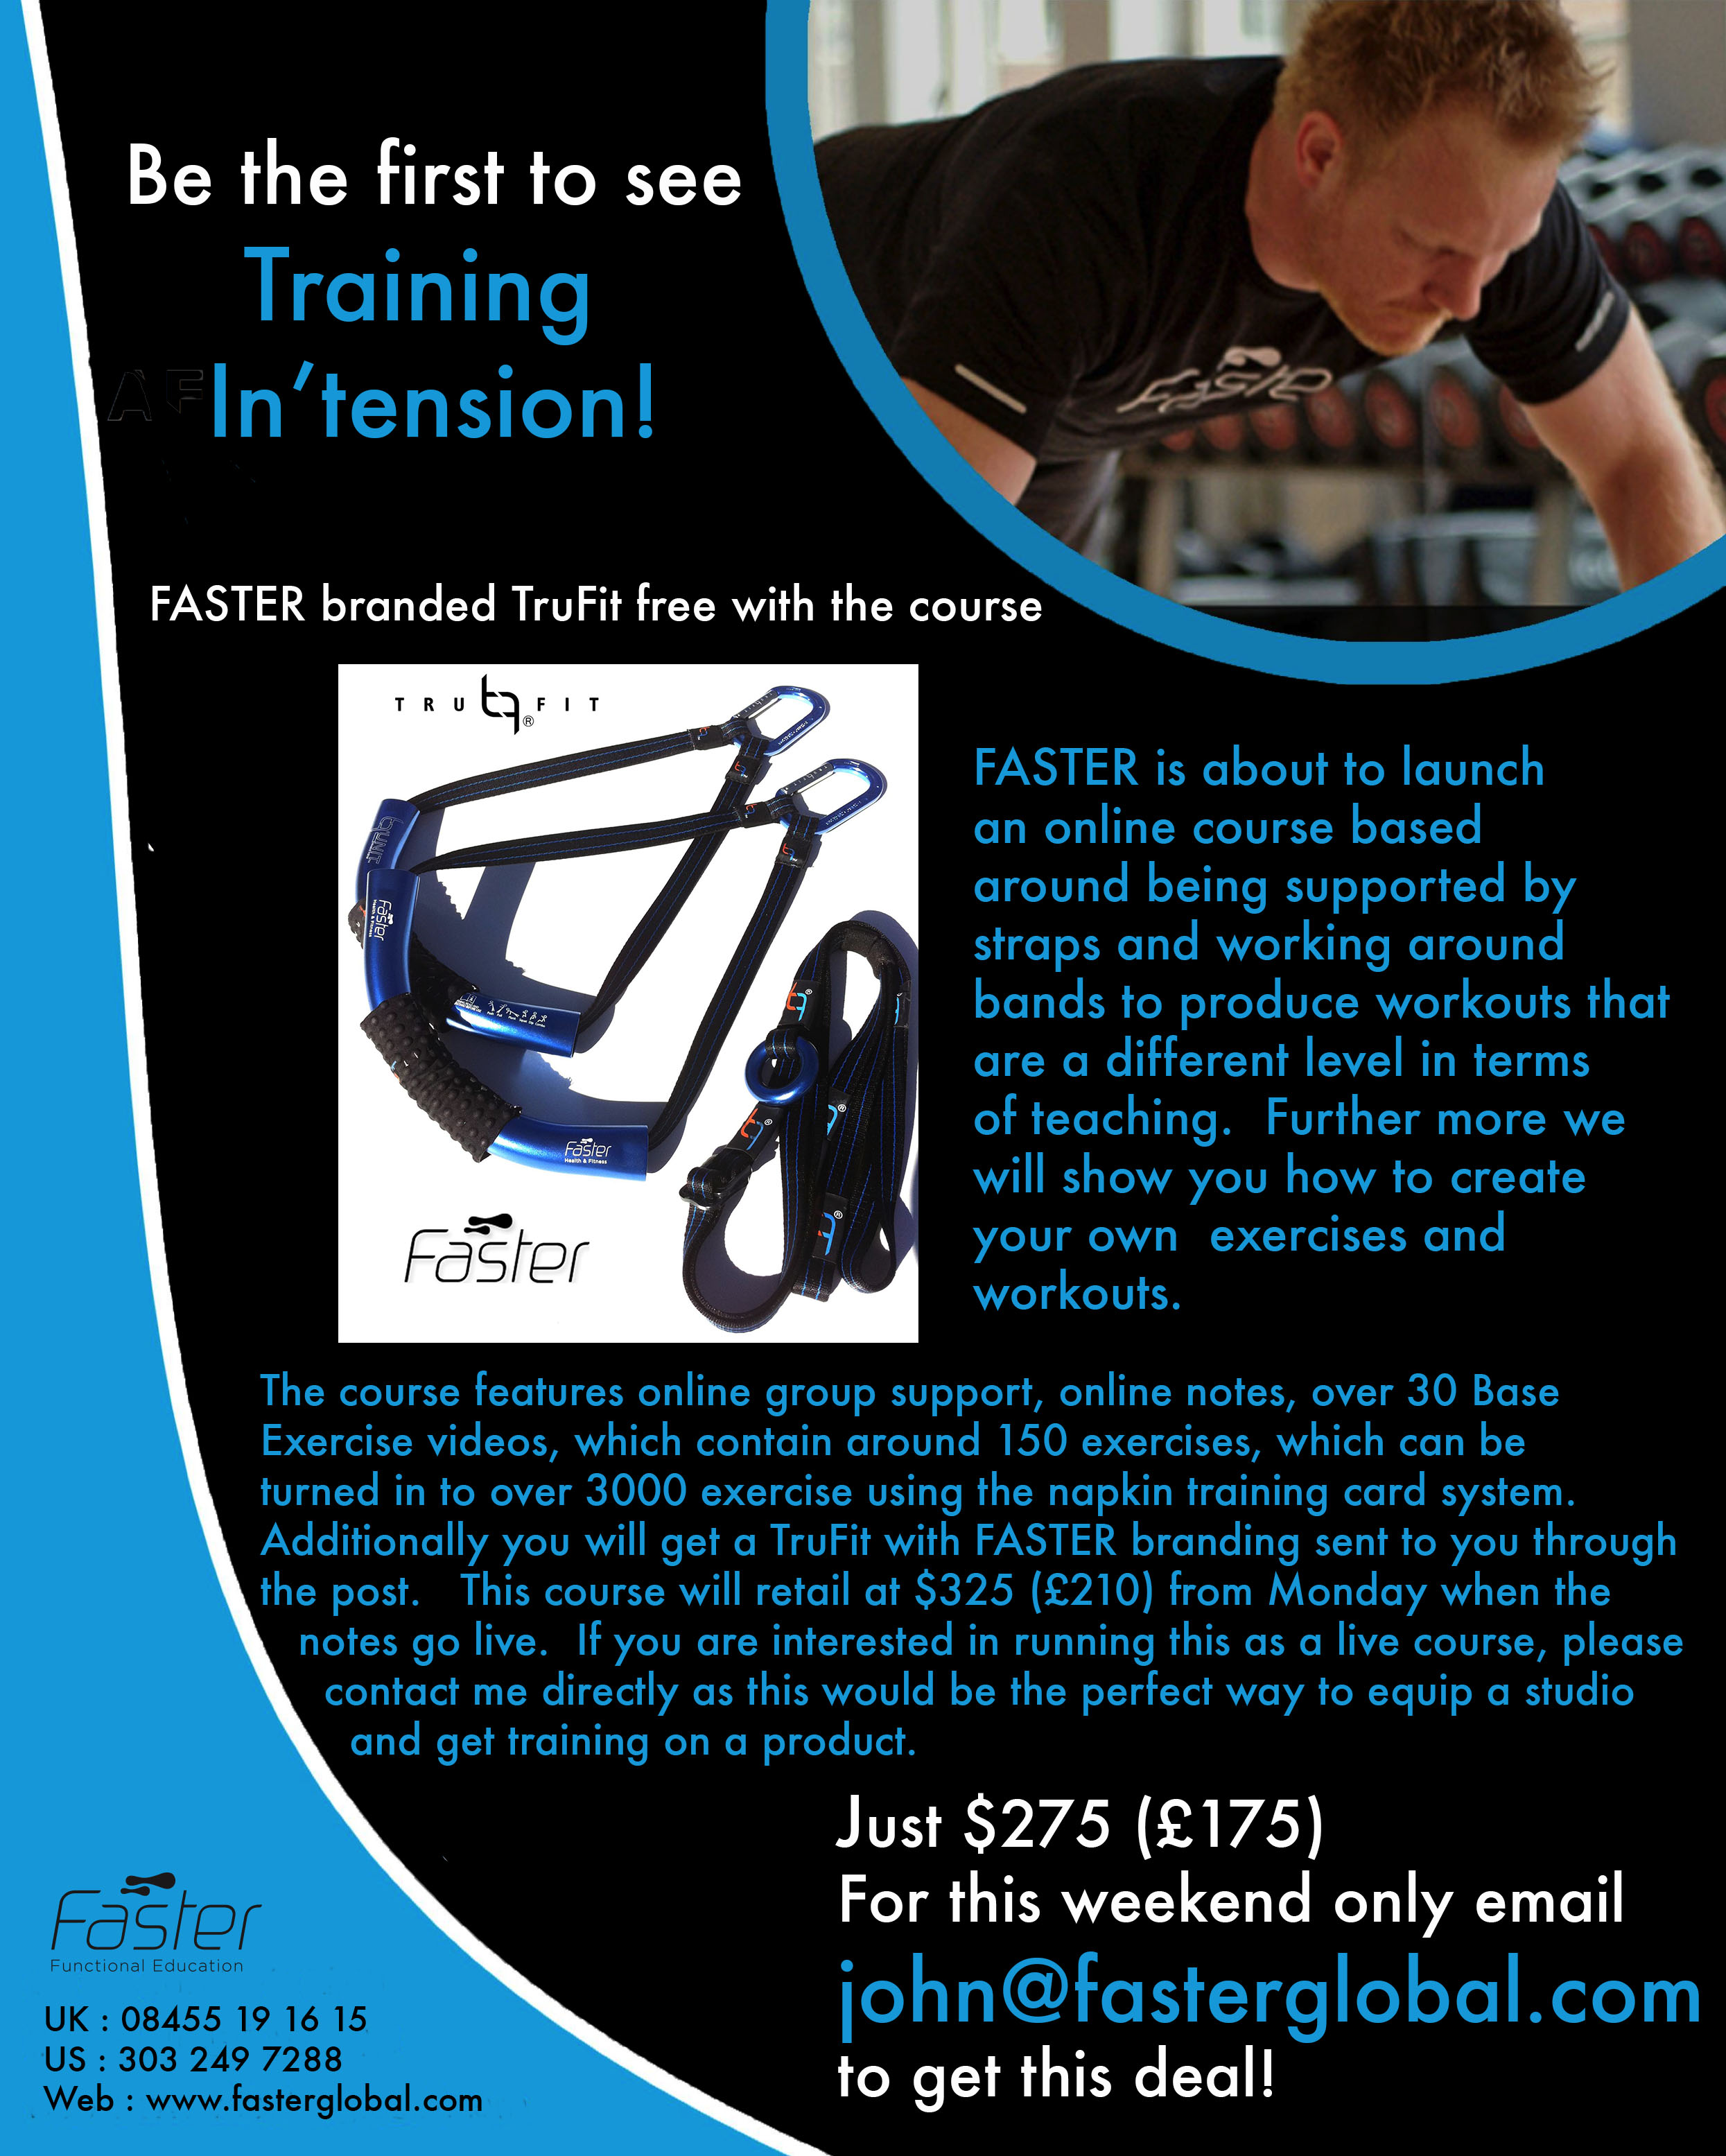 Training In'tension for Personal Trainers